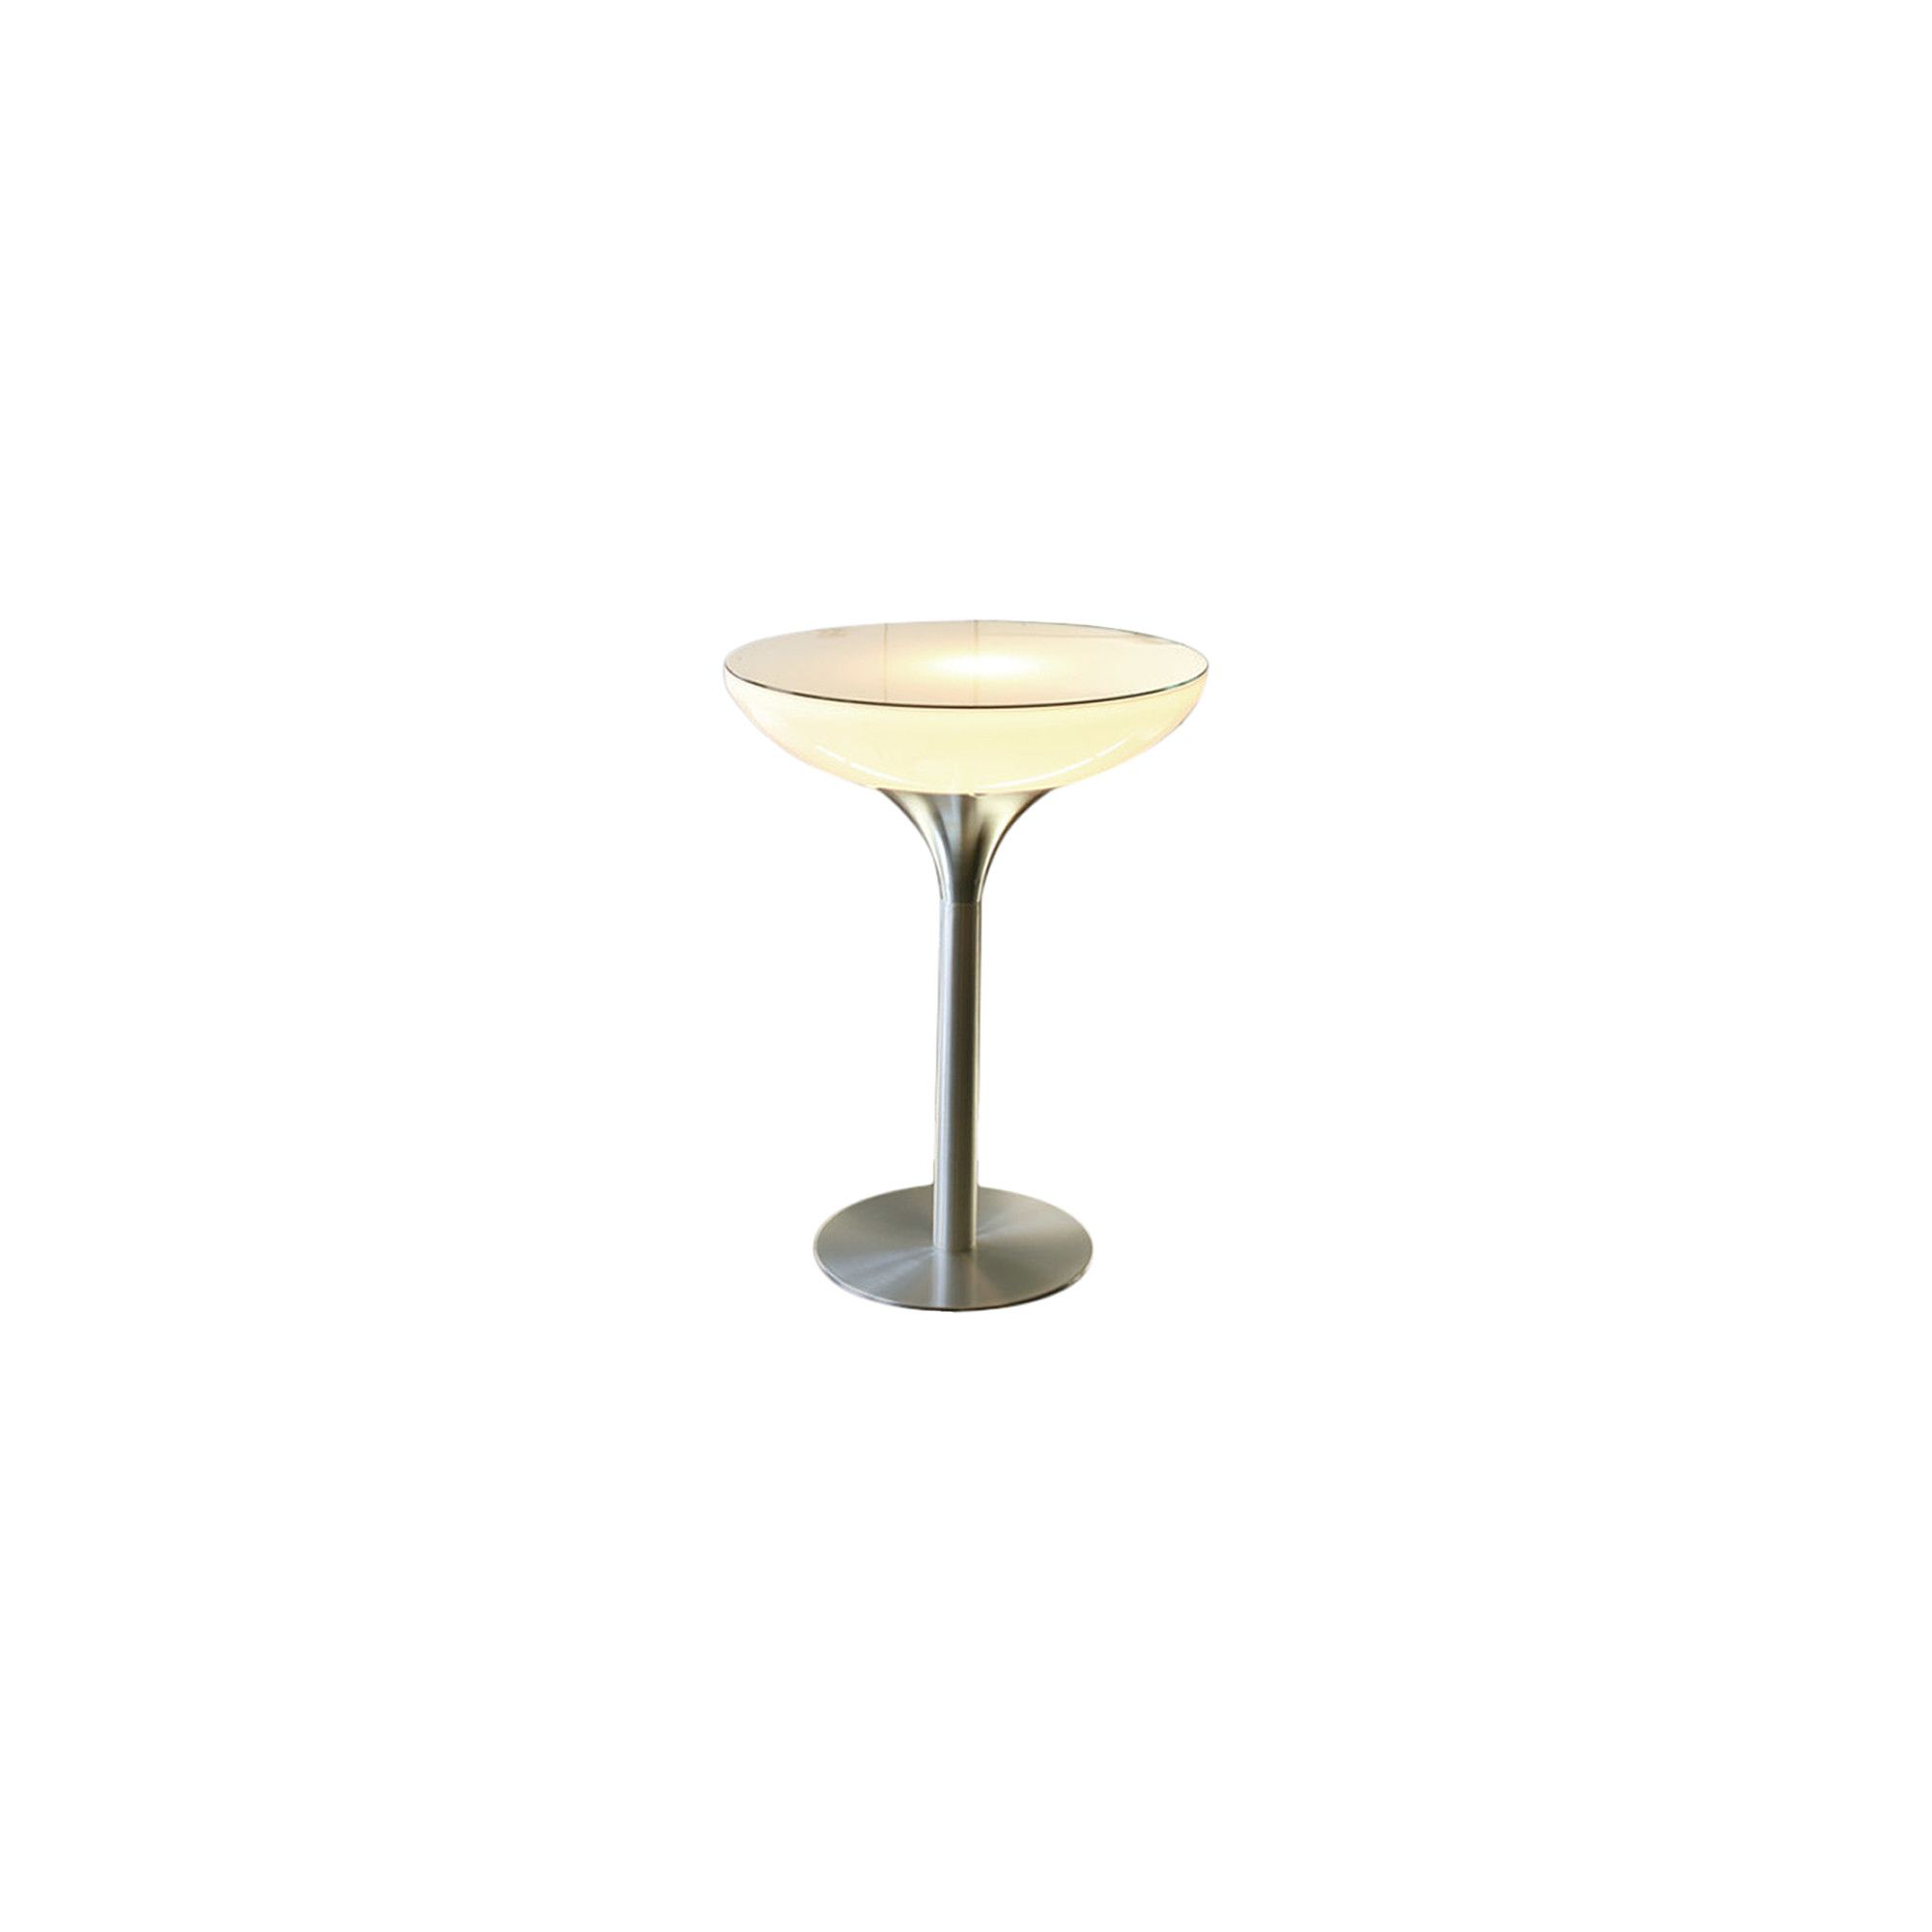 Moree Lounge Indoor Table with Glass Top - 45cm at Tesco Direct